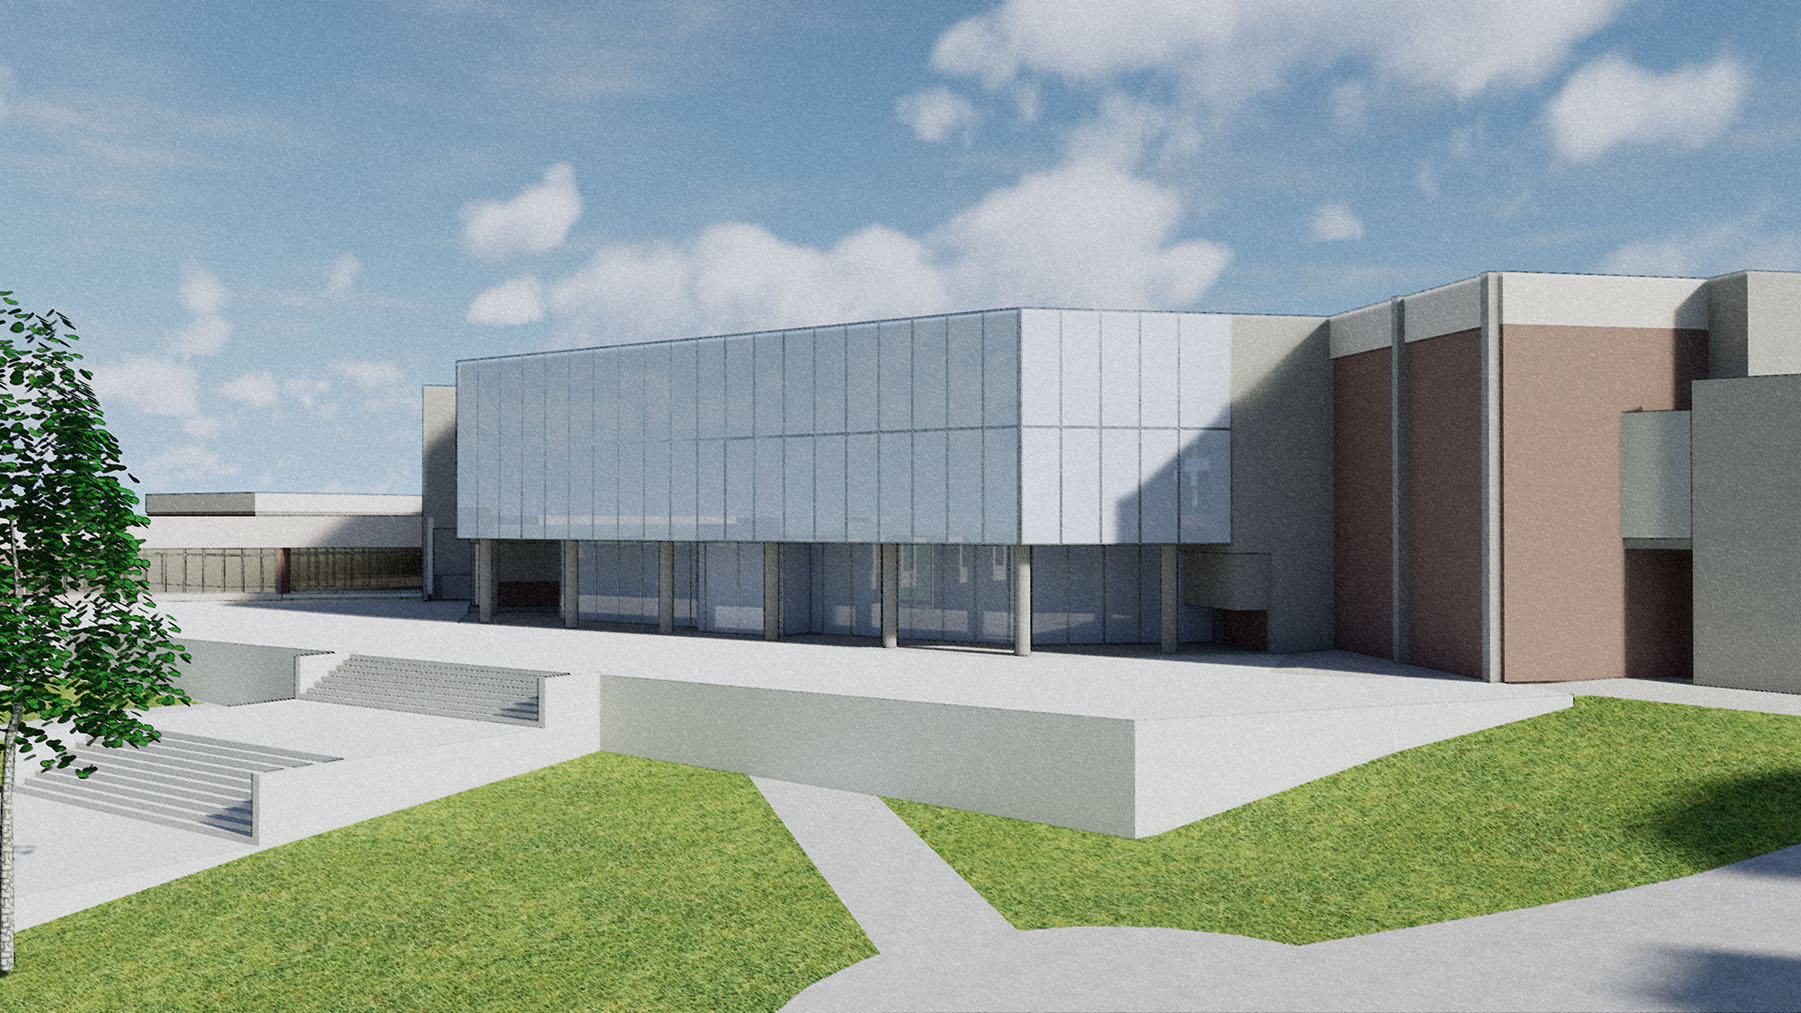 a rendering of Iowa Hall where the new student center will be located